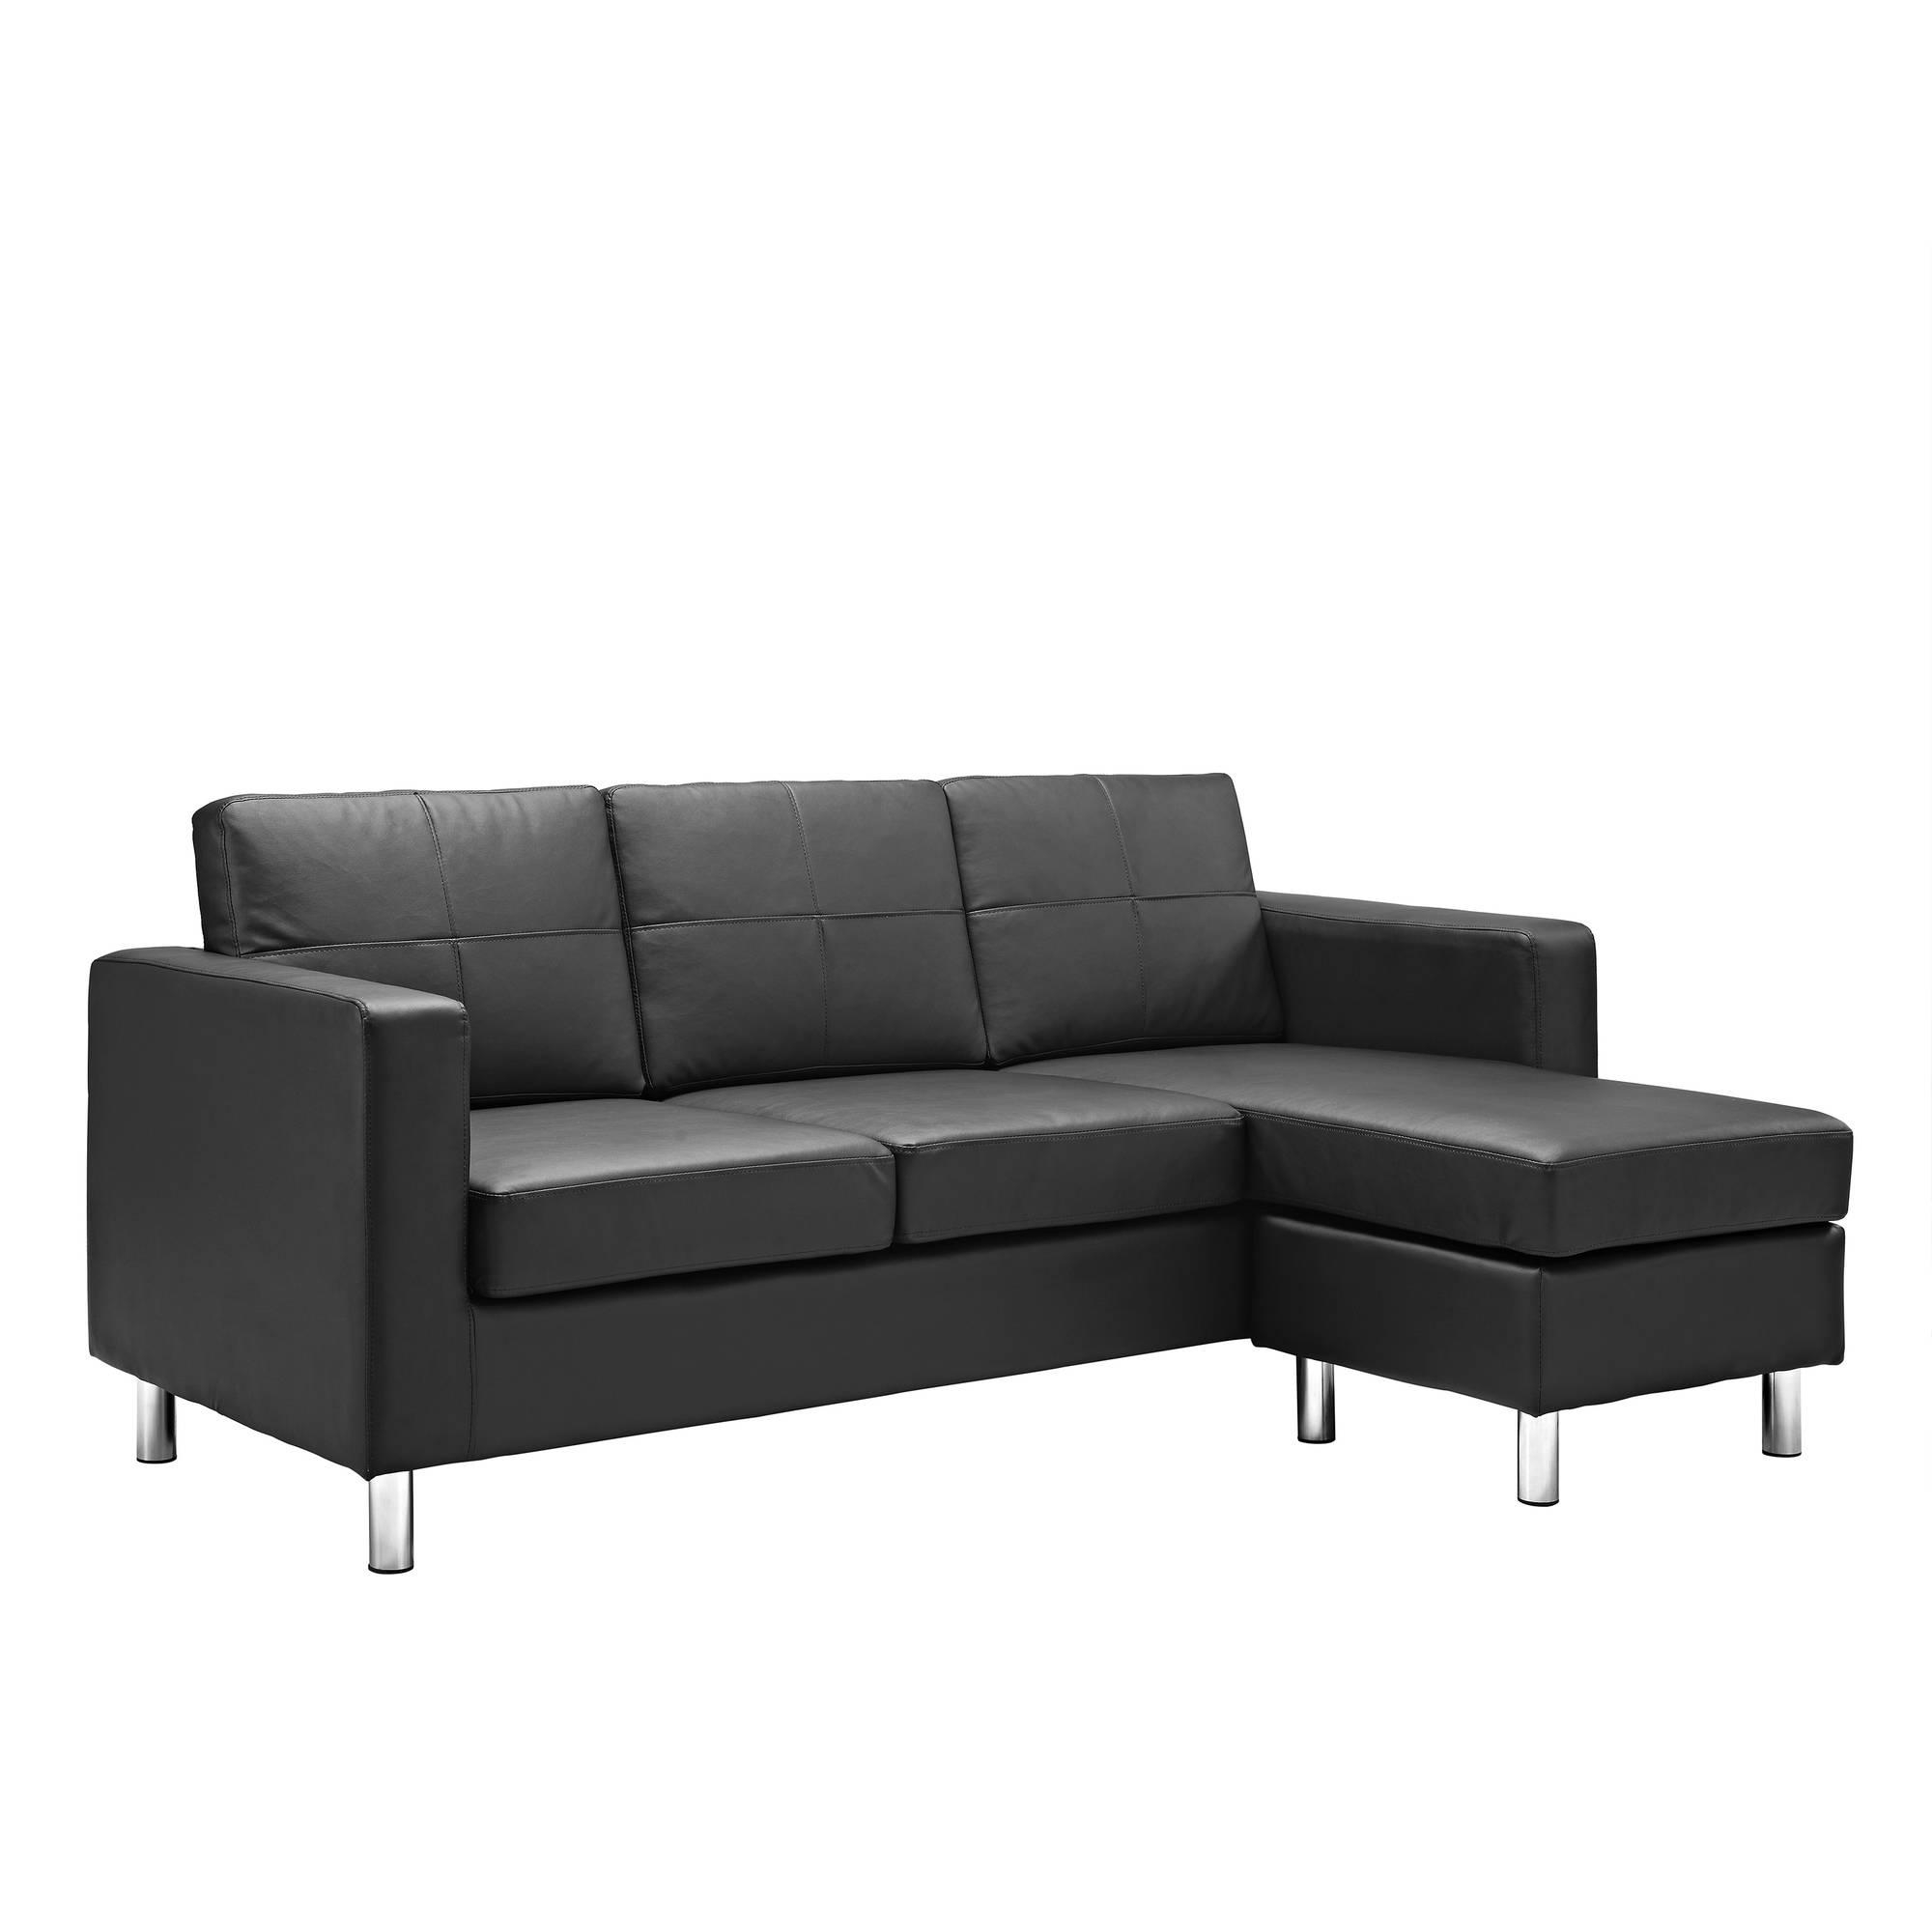 Tiny Sectional Sofa – Hotelsbacau Intended For Tiny Sofas (View 18 of 20)